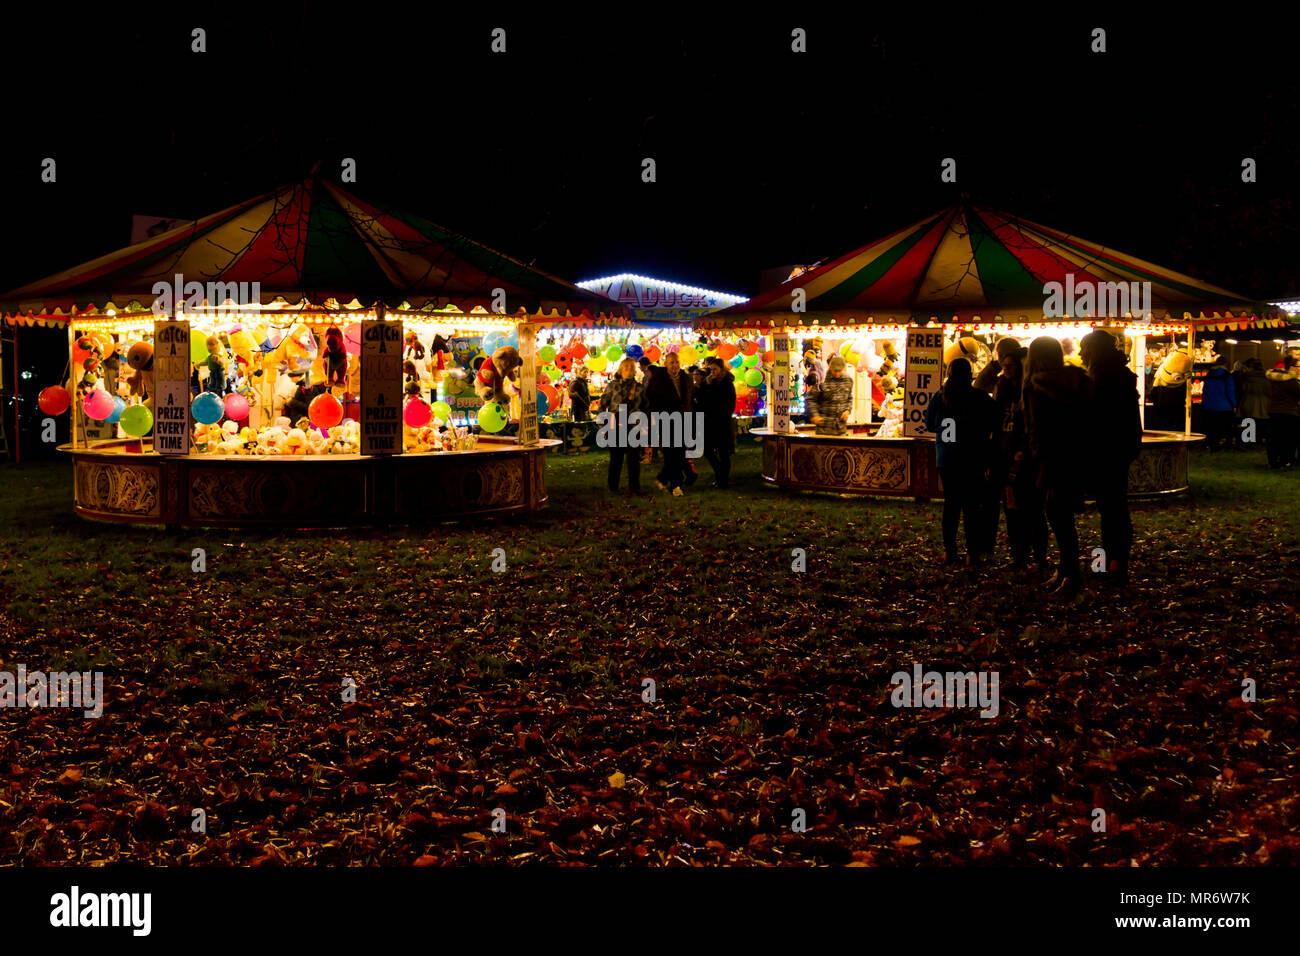 Fairground rides and booths at Himley Hall on Bonfire night November 5th. - Stock Image